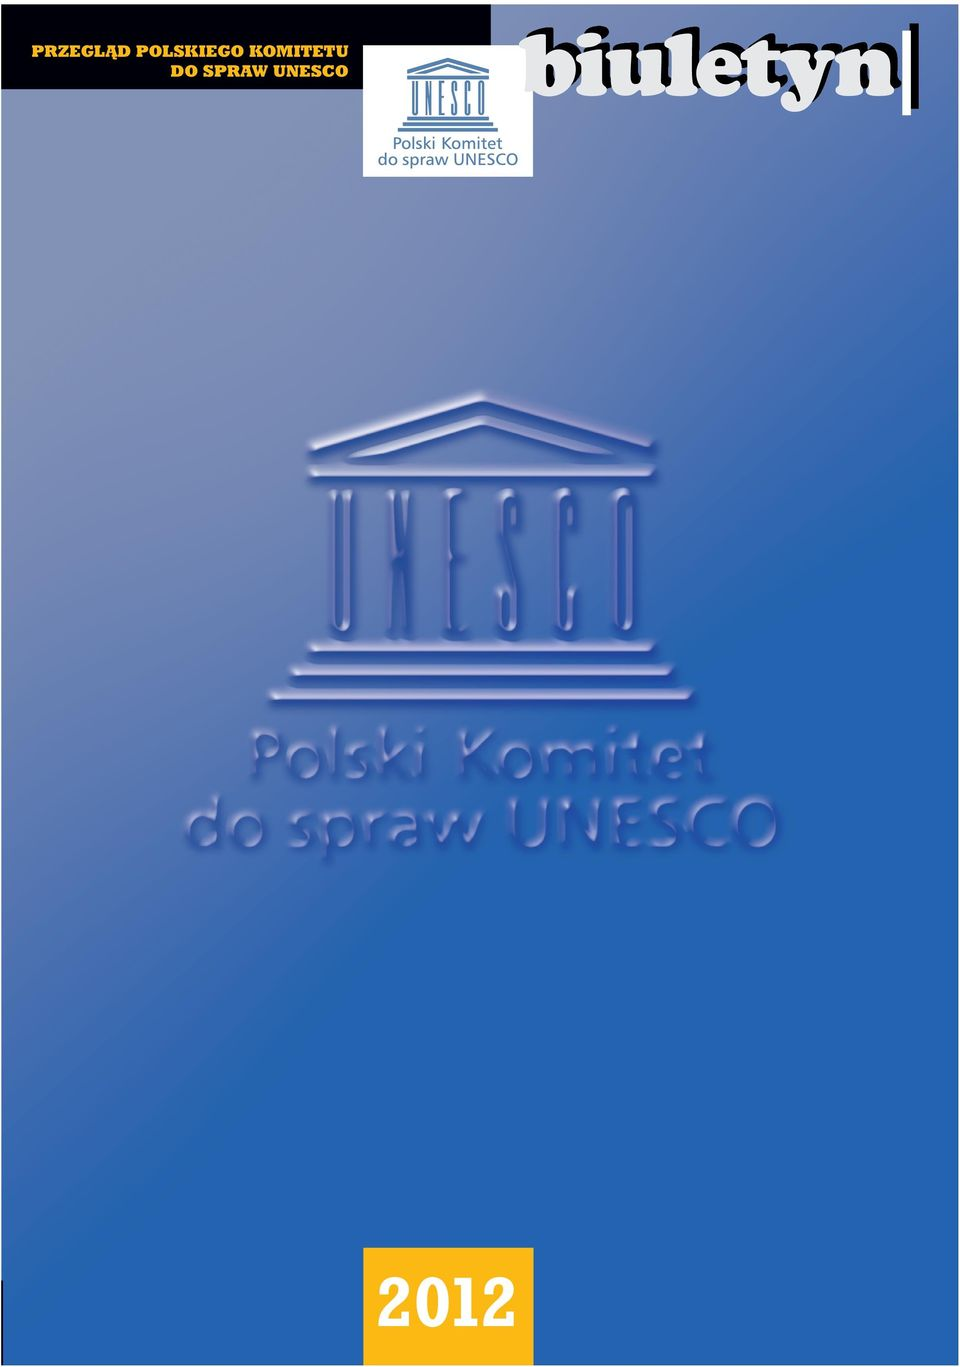 NATIONAL COMMISSION for UNESCO Review bulletin covbiul13.